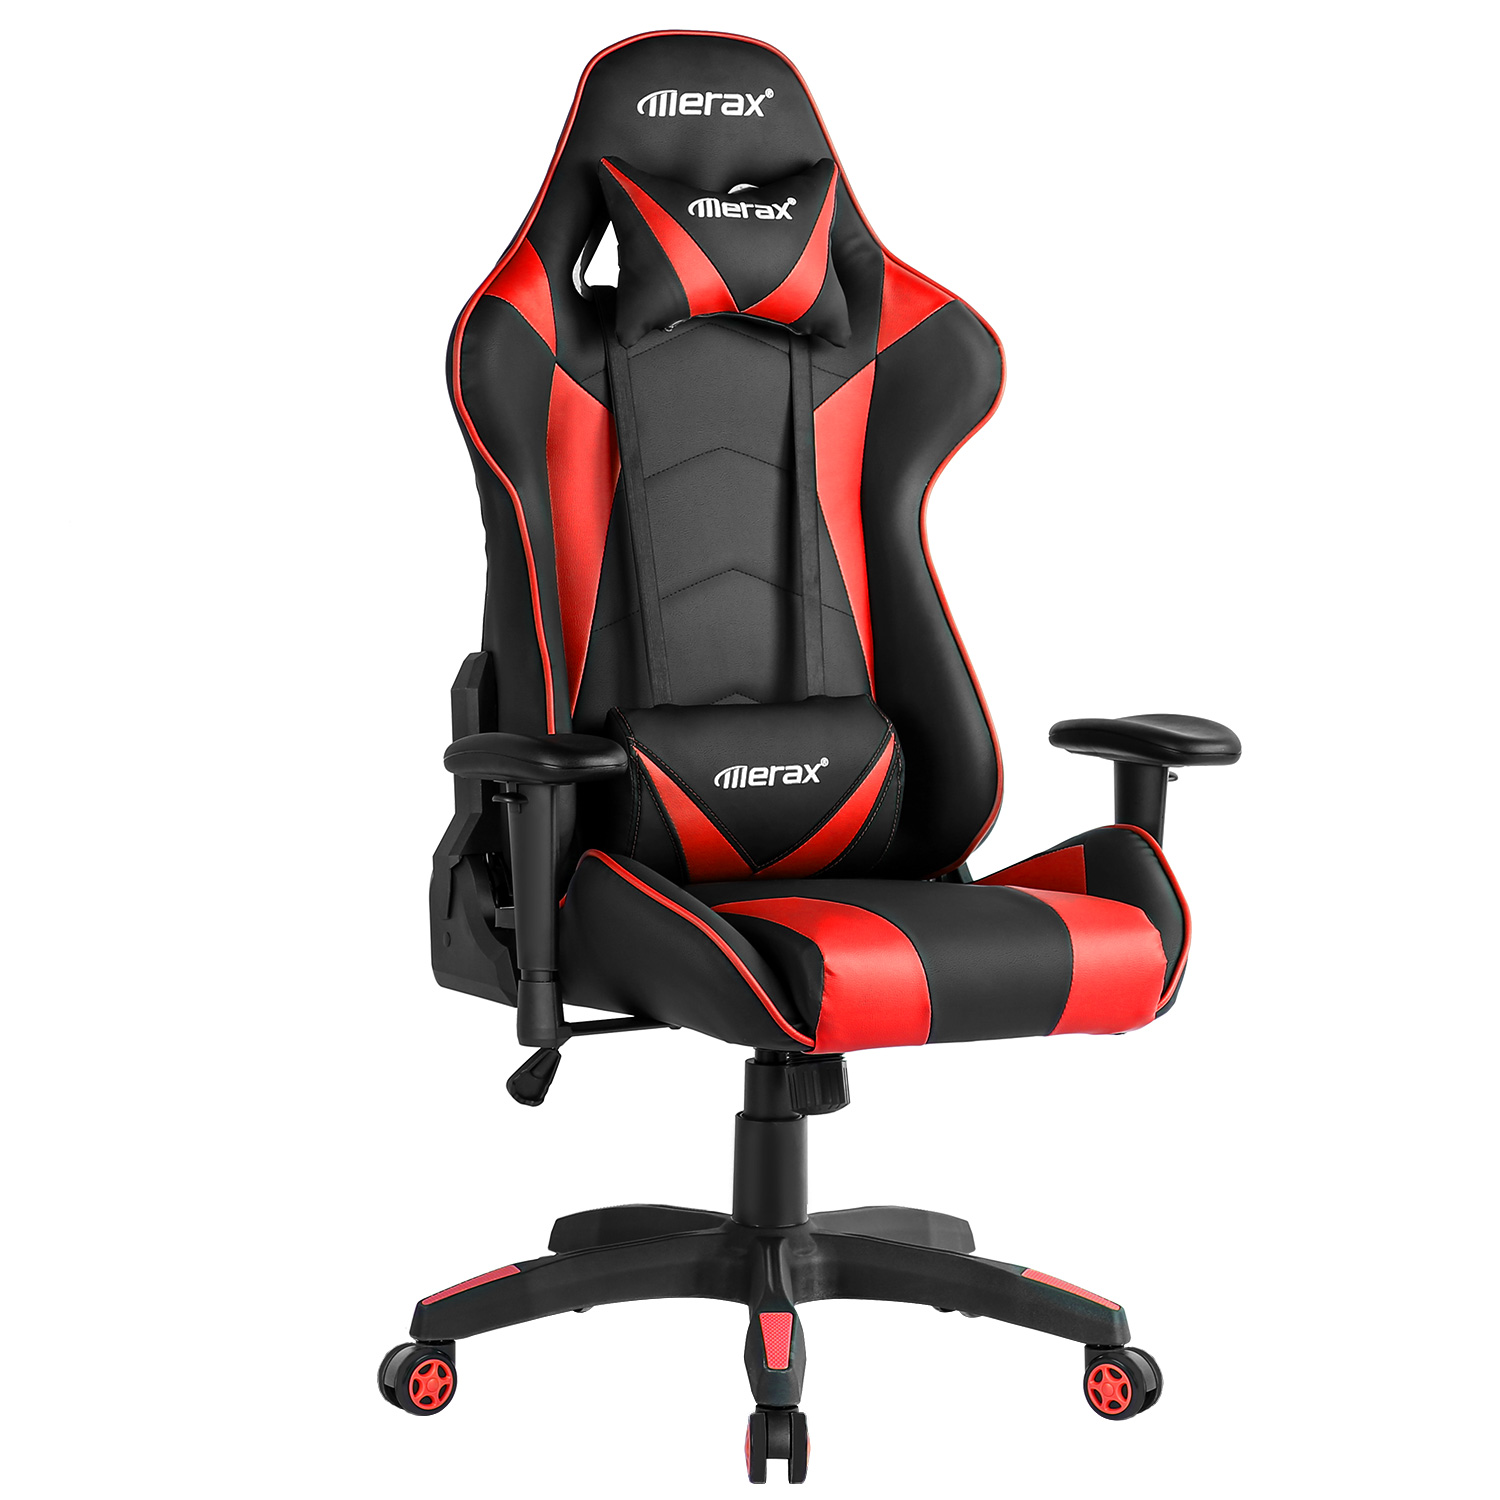 Merax Ergonomic High-back Racing Gaming Chair, Red